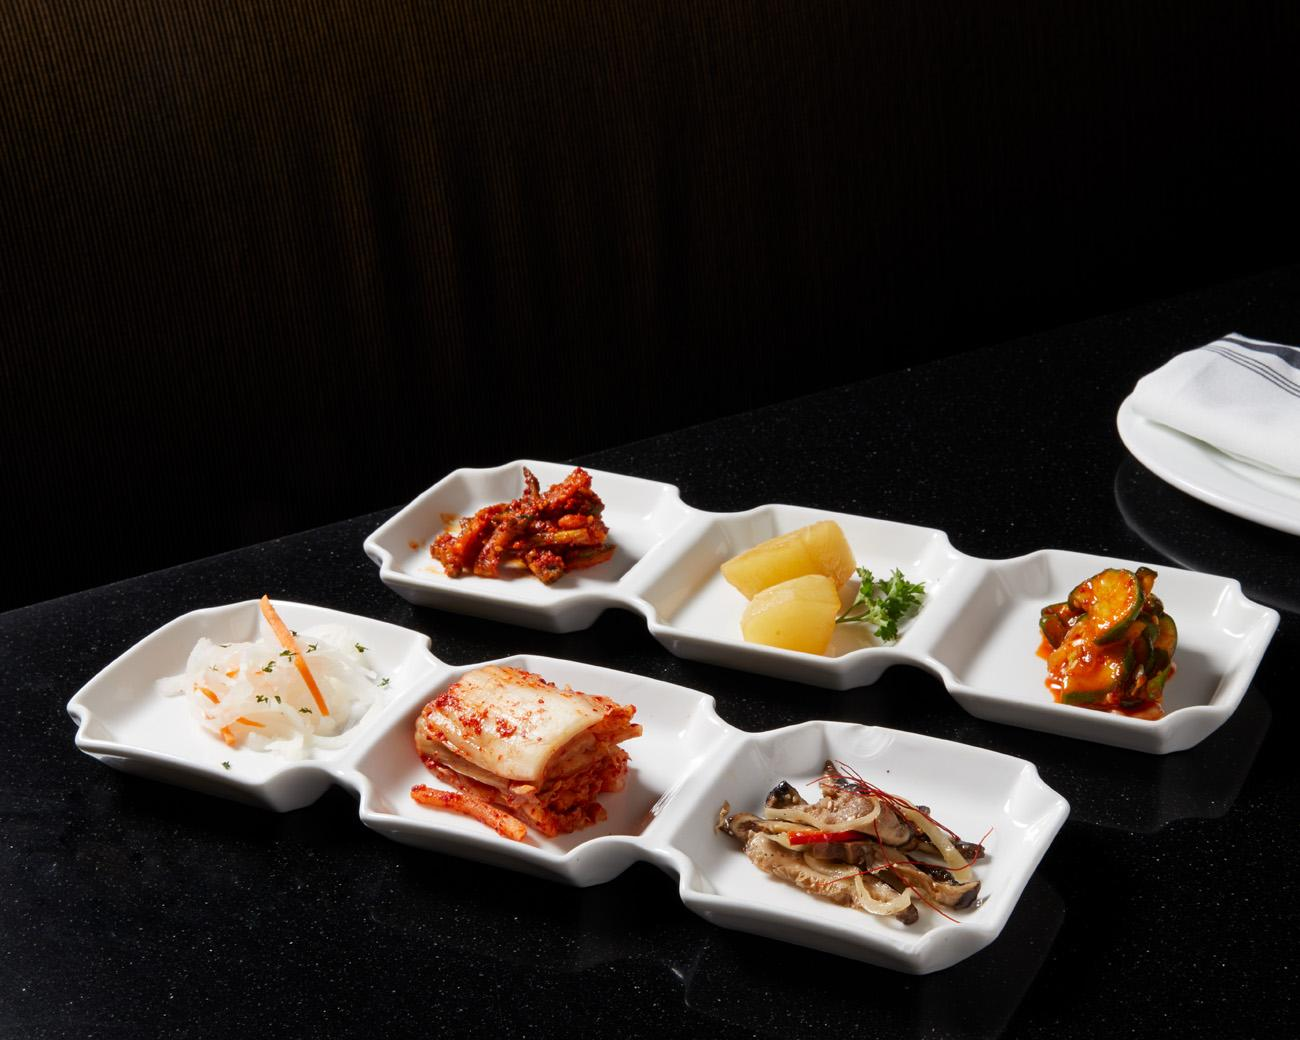 Banchan (a collection of small dishes) and assorted kimchi: pickled daikon, traditional kimchi, spicy daikon, roasted potato, shiitake mushroom salad, and cucumber spicy salad / Image: Marlene Rounds // Published 9.18.18